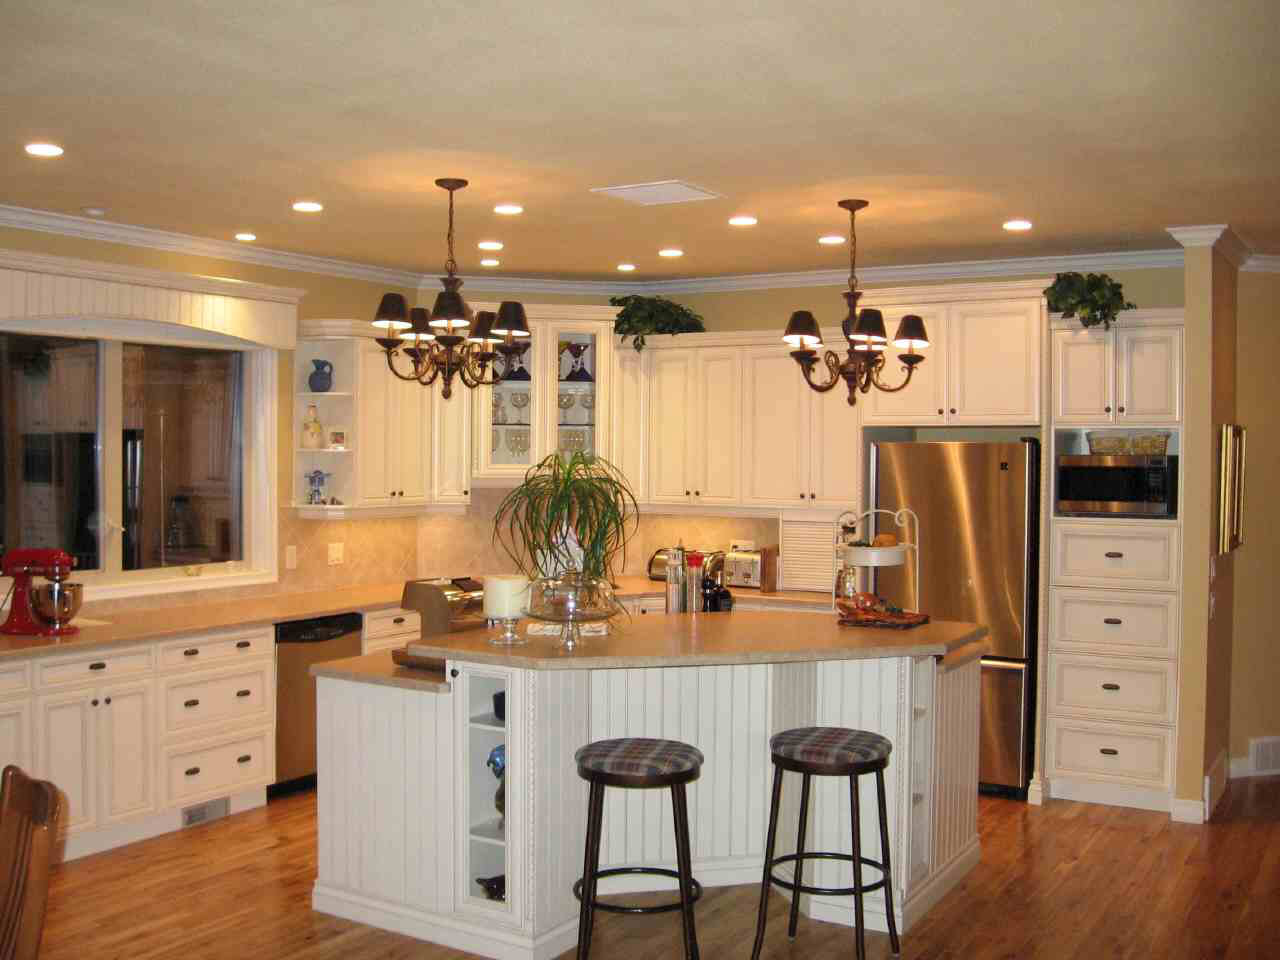 Interior kitchen design ideas home ideas decoration for Modern kitchen interior design ideas